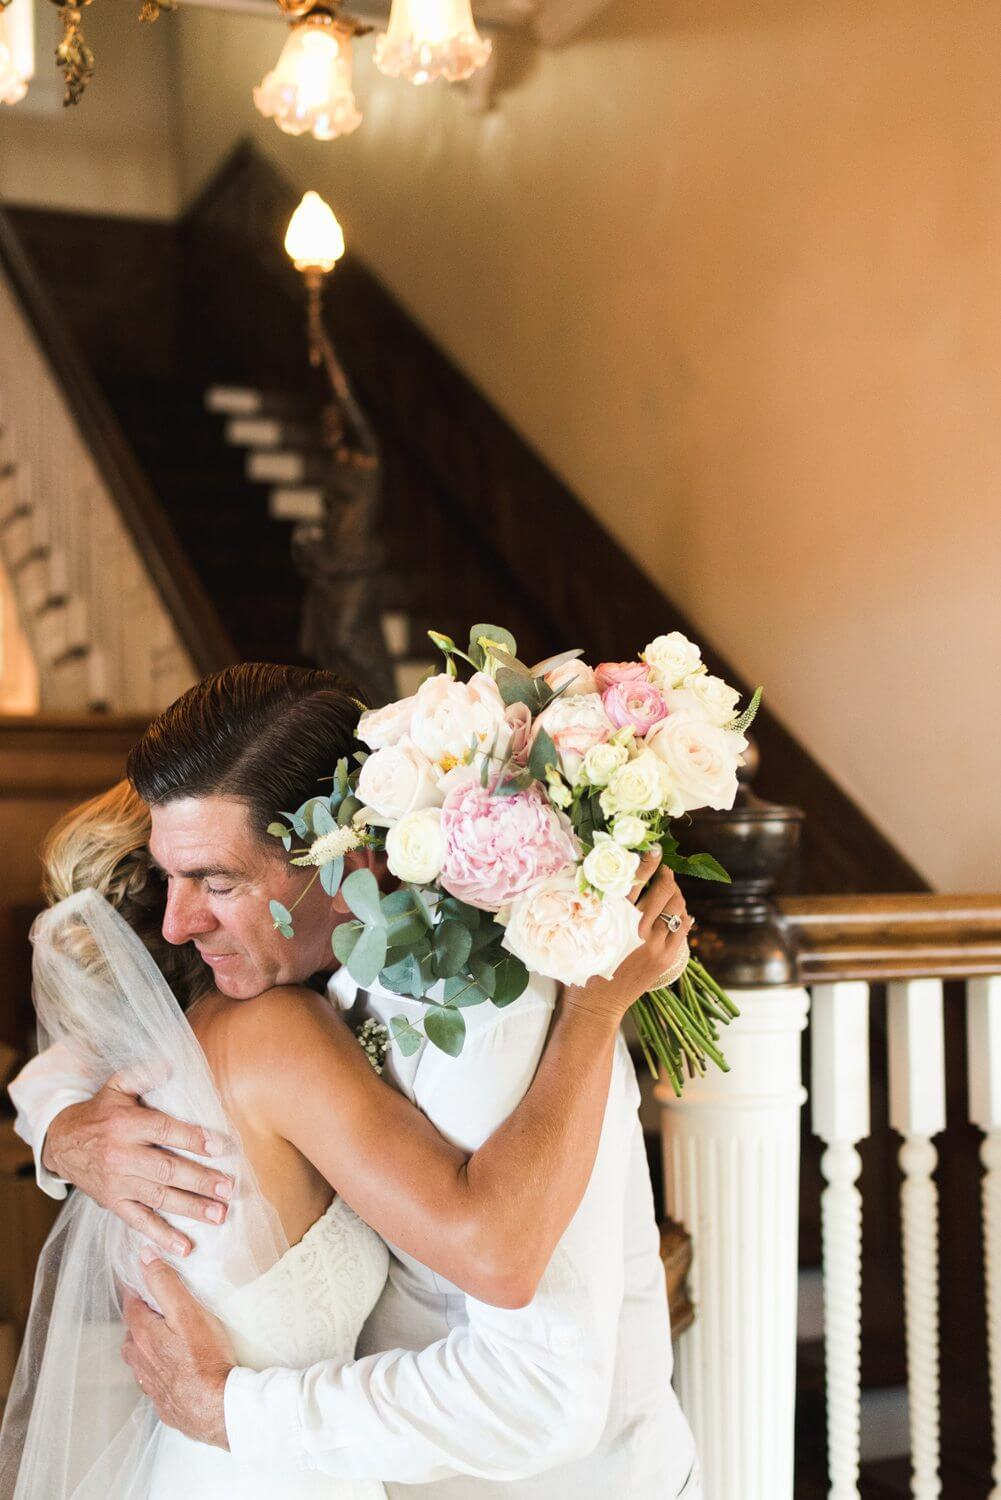 Freas Photography Southernmost House Wedding 47 - Boho Styled Key West Wedding at the Southernmost House in Key West, Florida